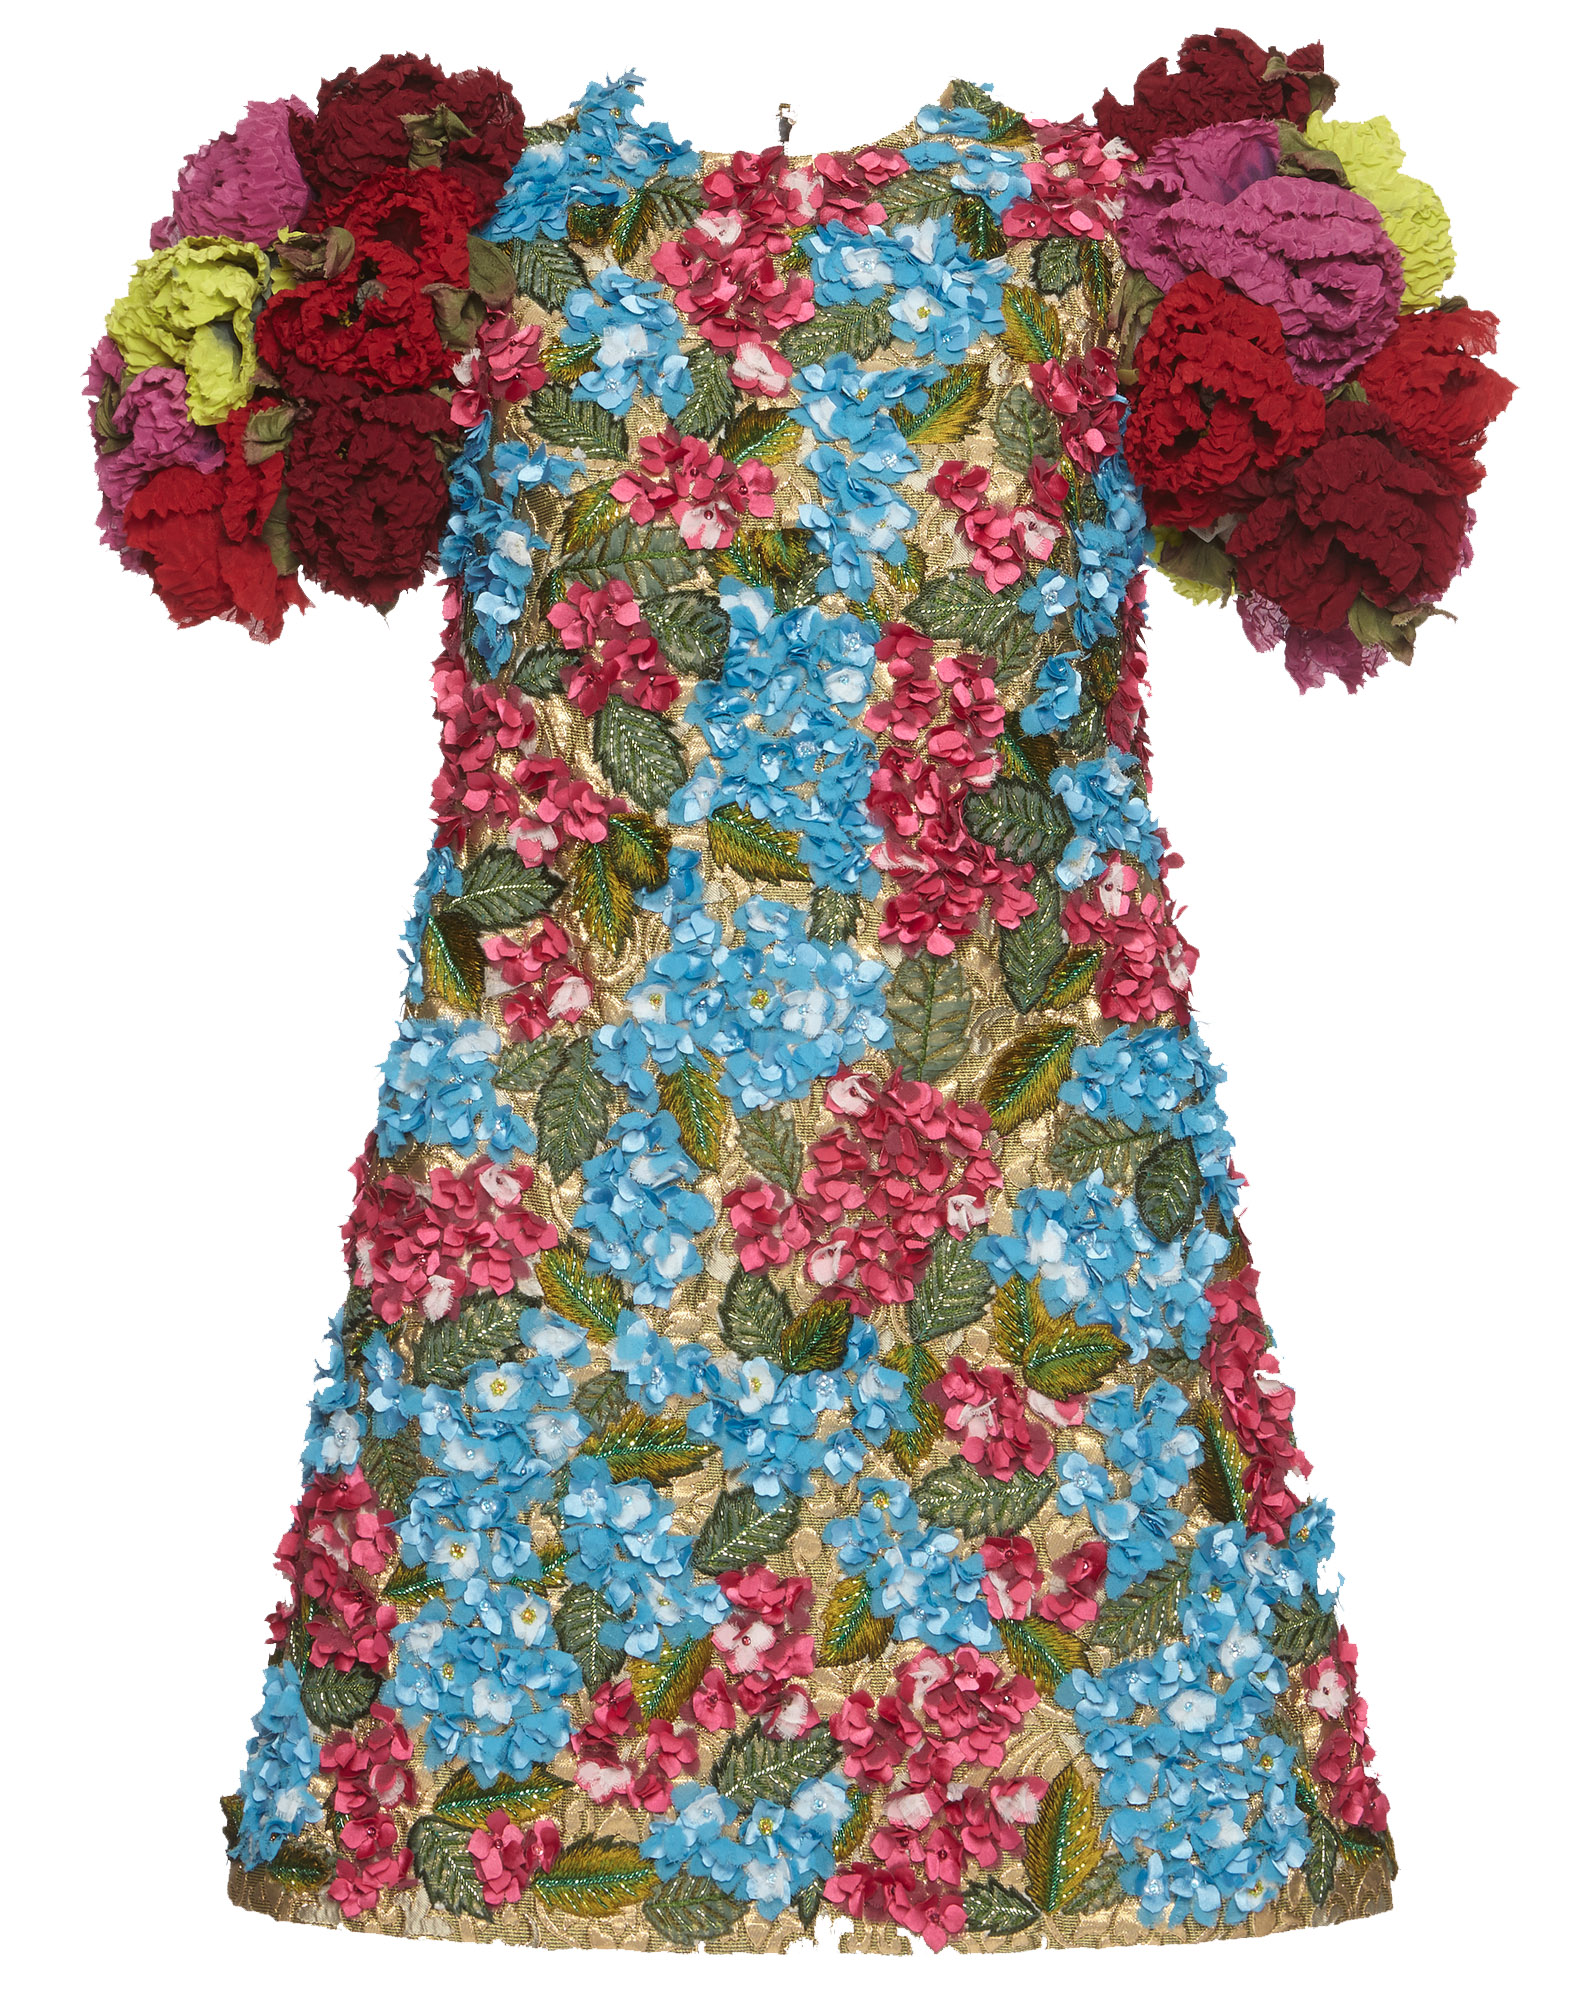 Dolce & Gabbana 3d floral rose print dress multicolor blue red yellow pink gold